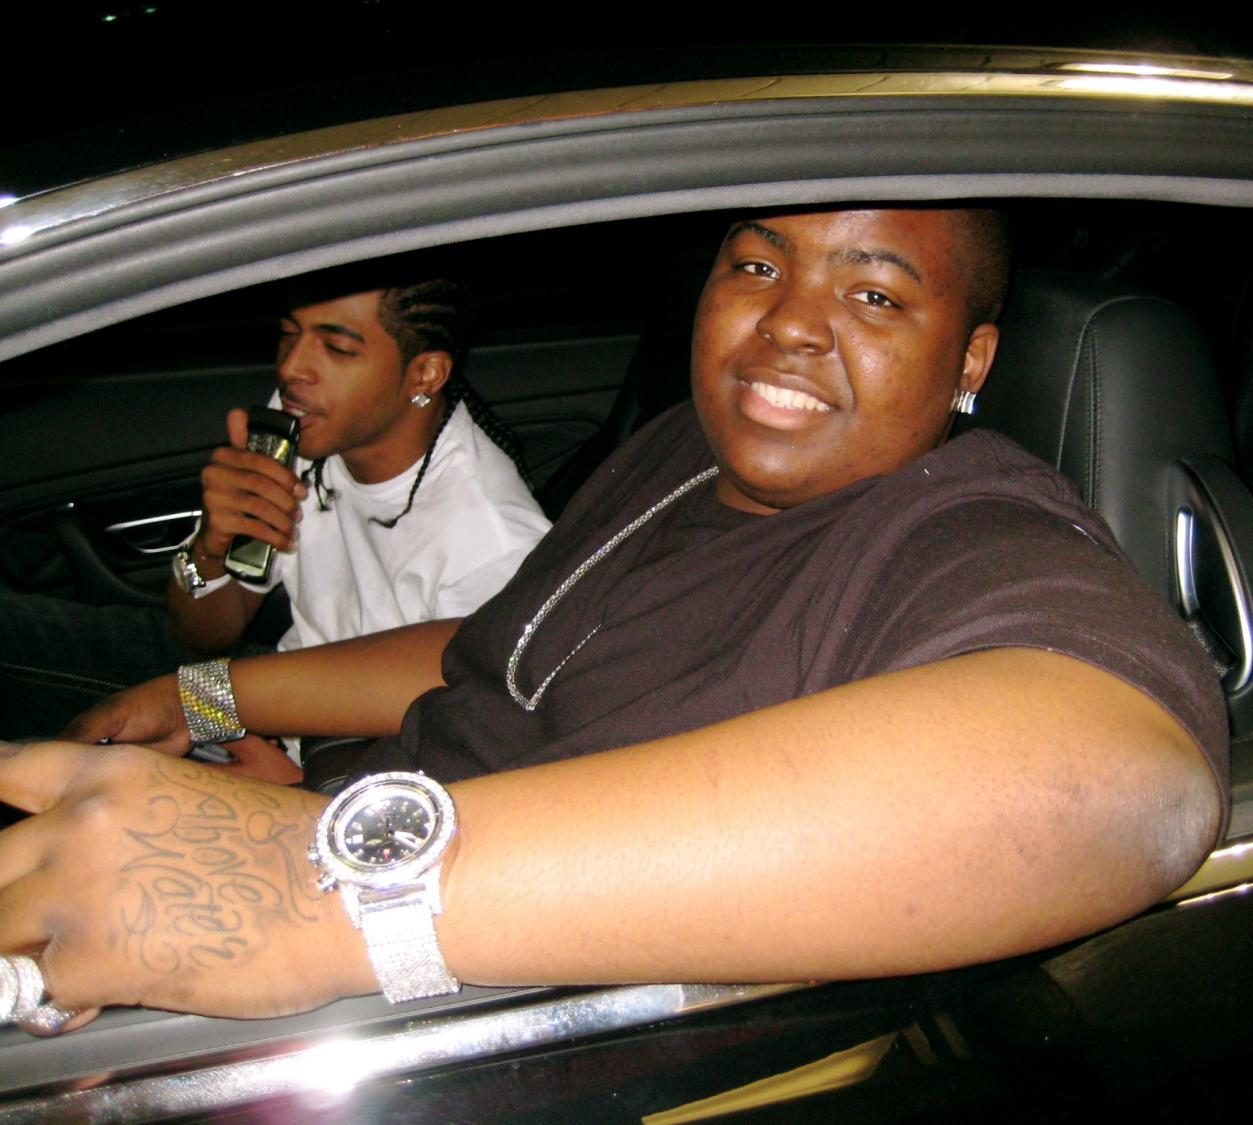 Sean Kingston is scheduled to perform at Spring Weekend on April 27.